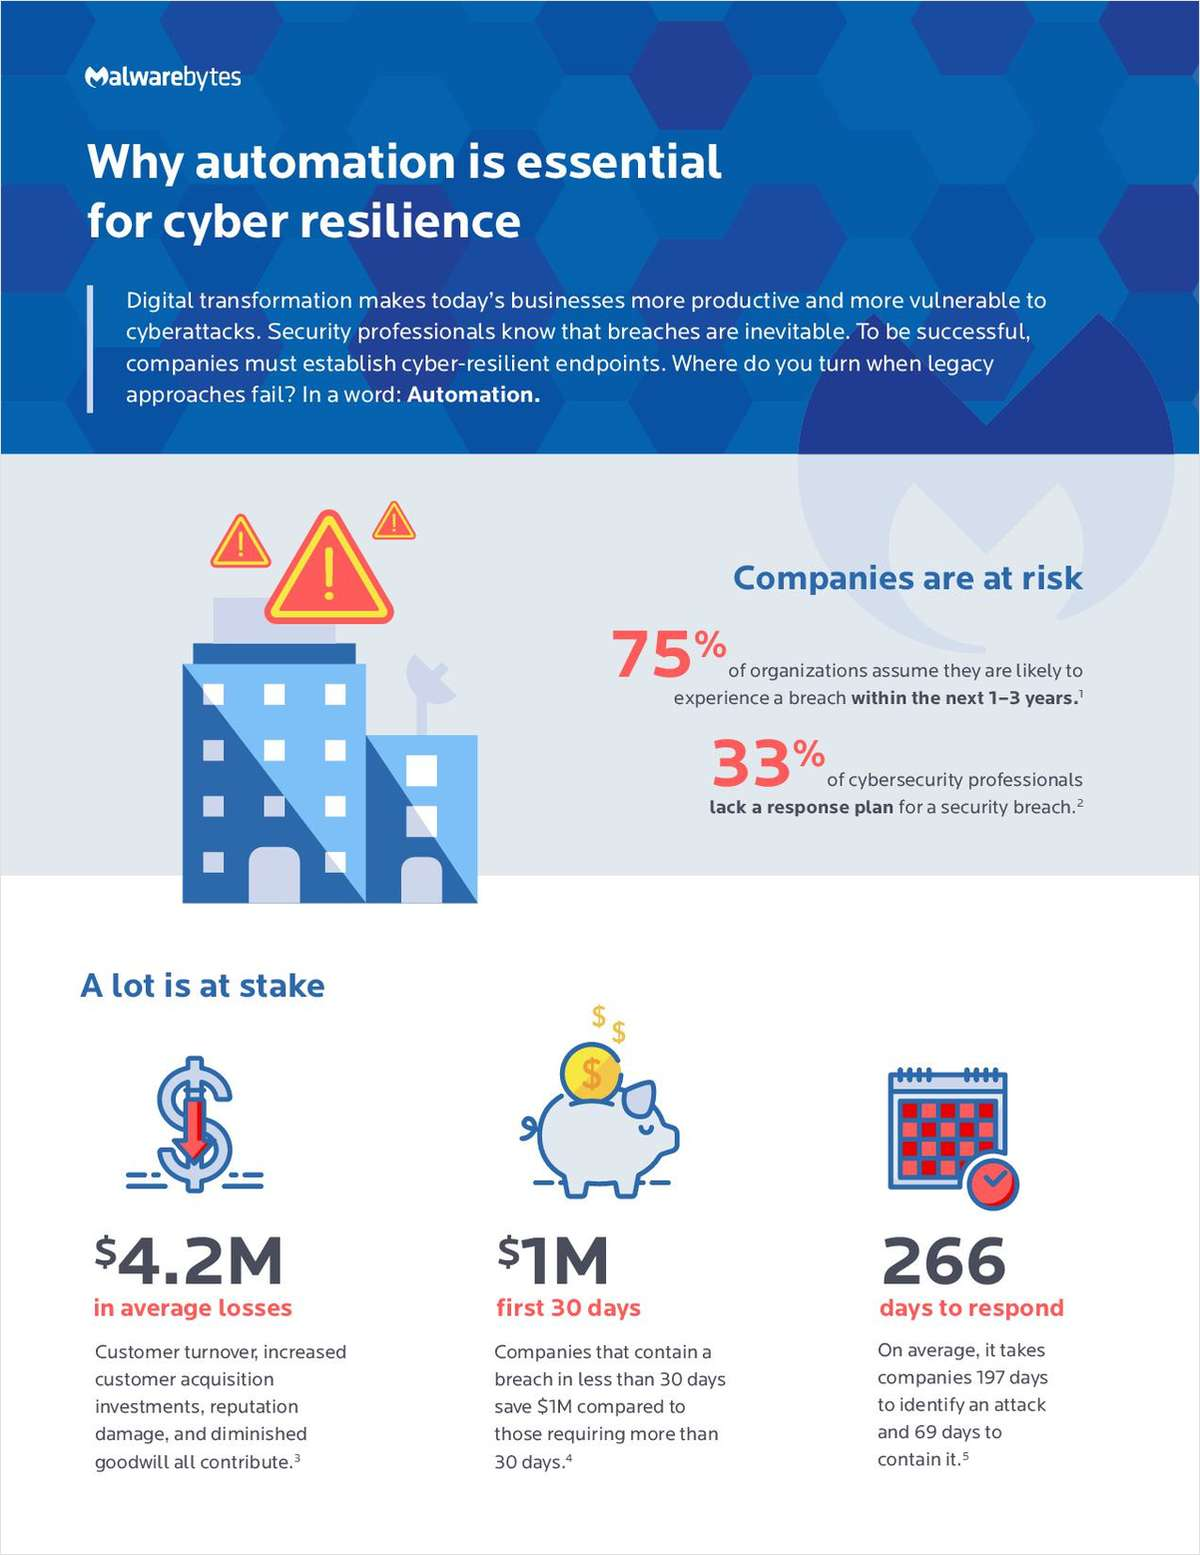 Why automation is essential for cyber resilience